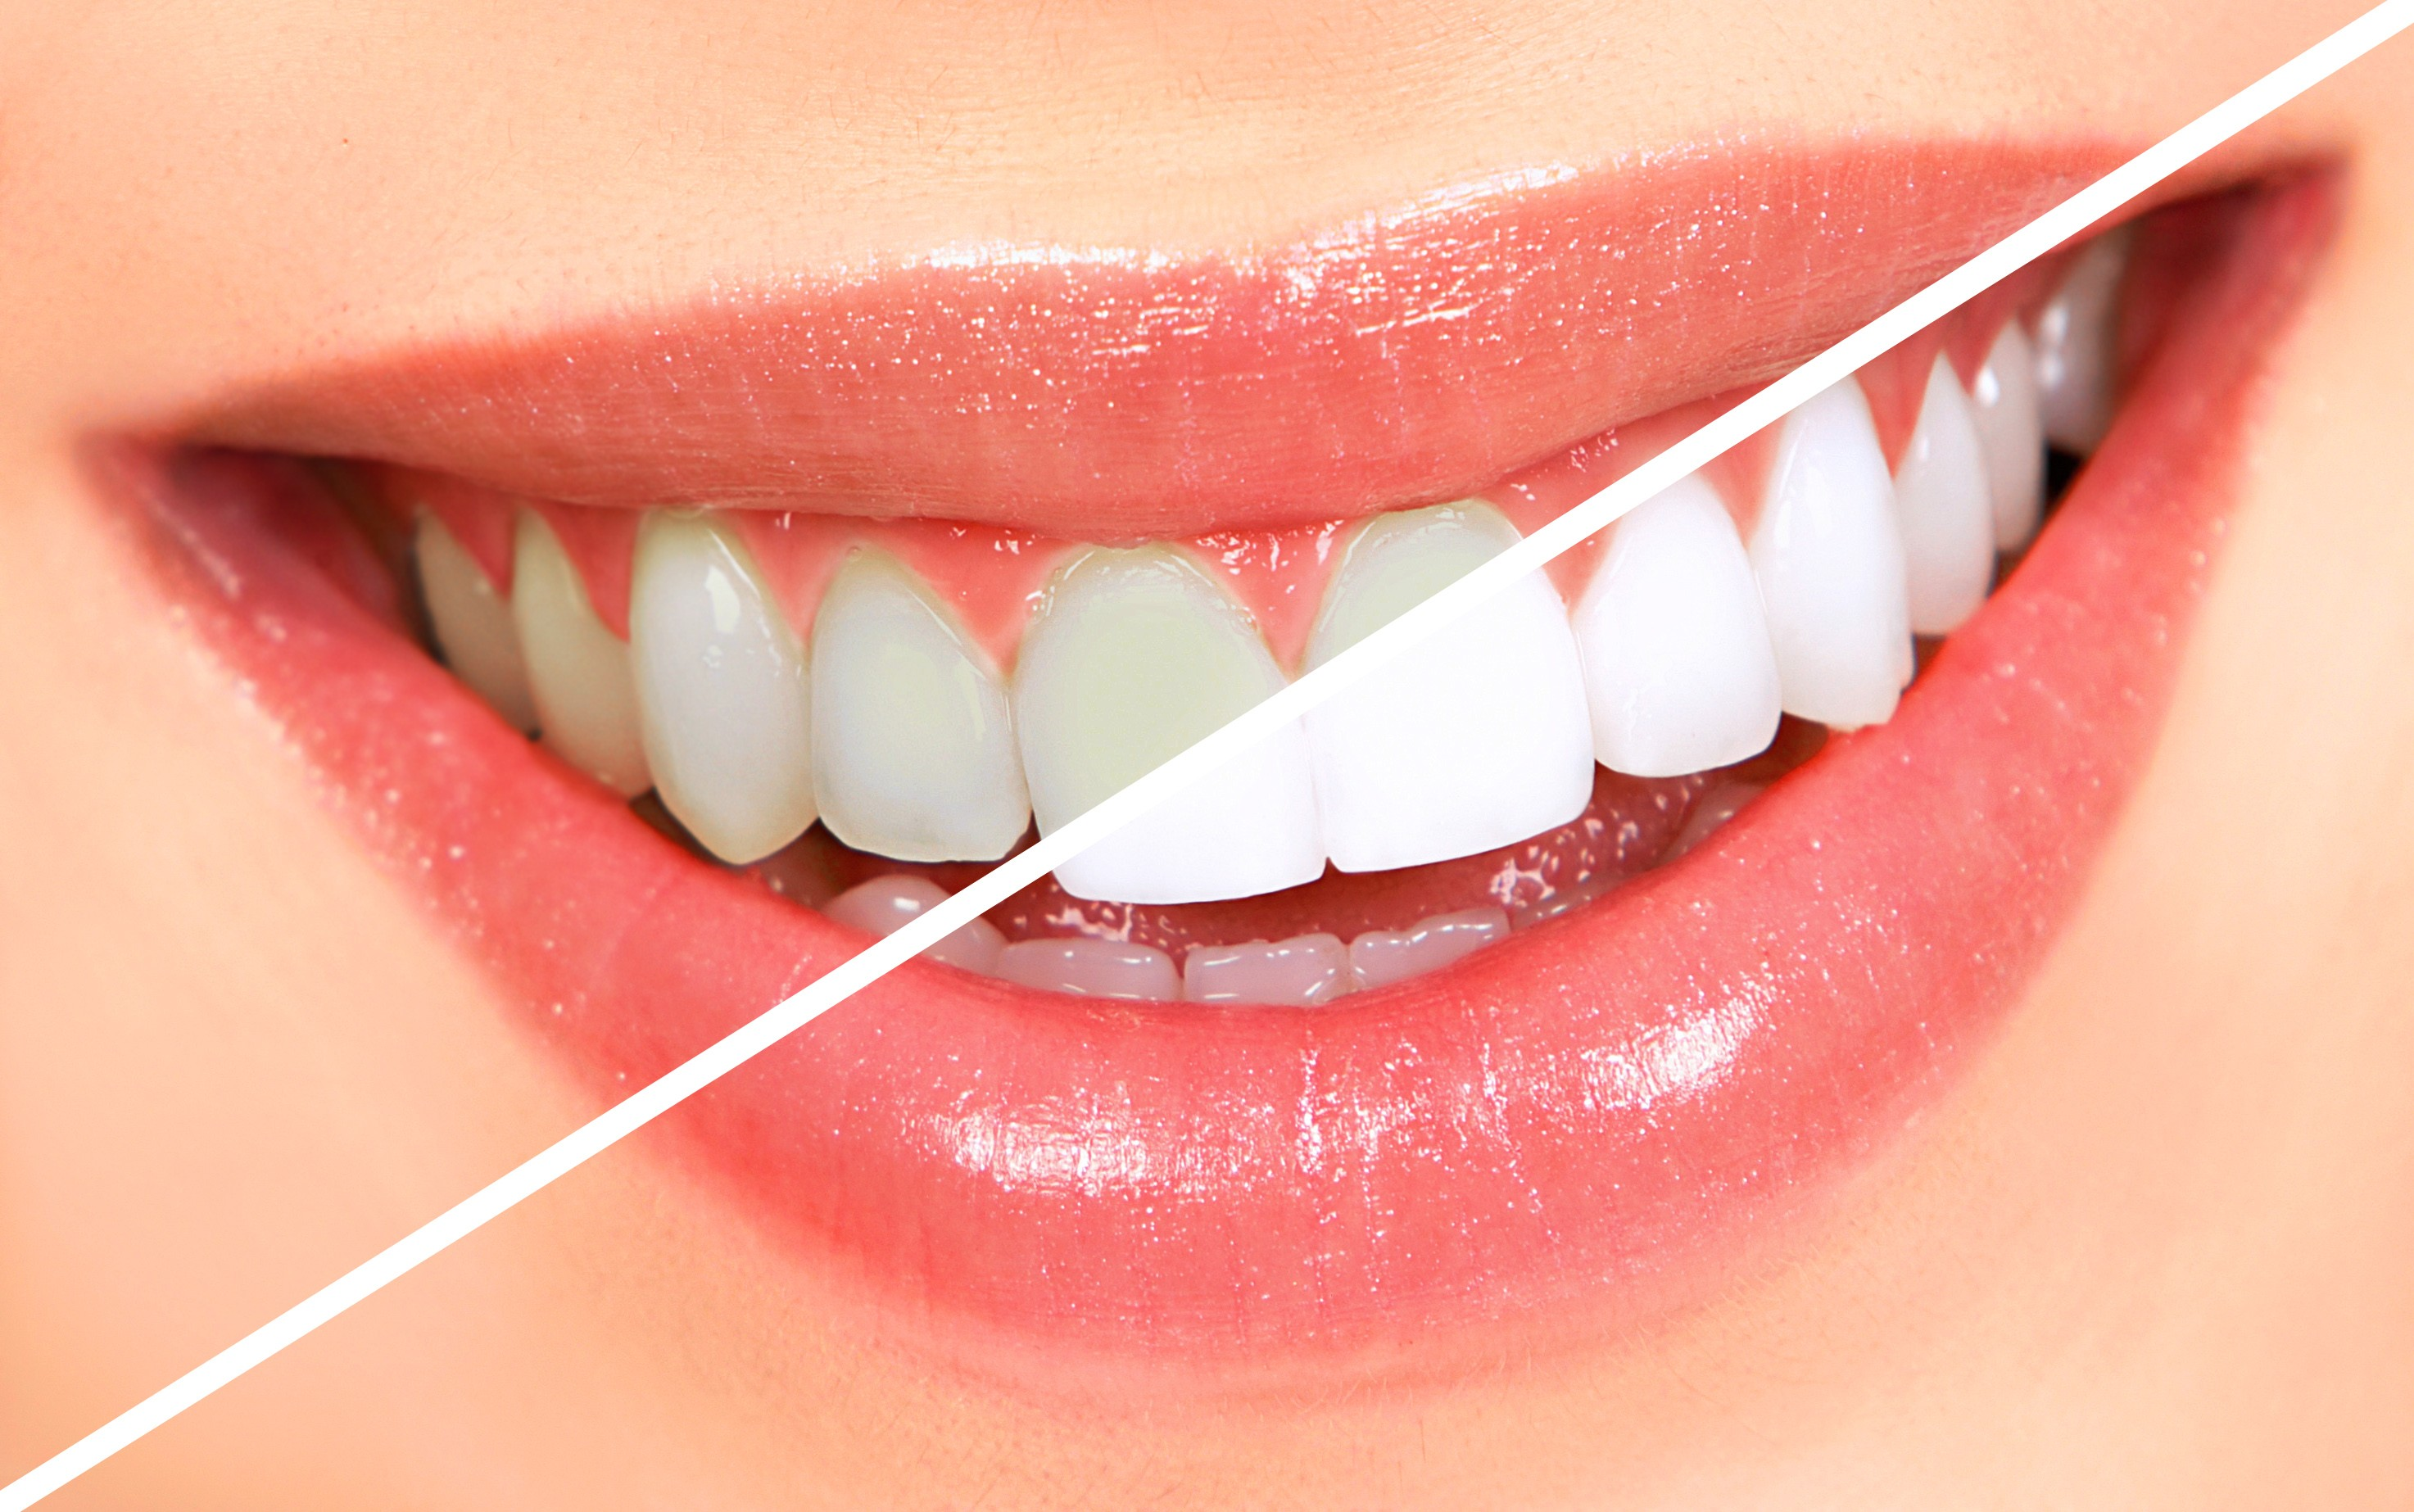 TEETH WHITENING – Welcome To Lana's Dental Care (239) 593-6488